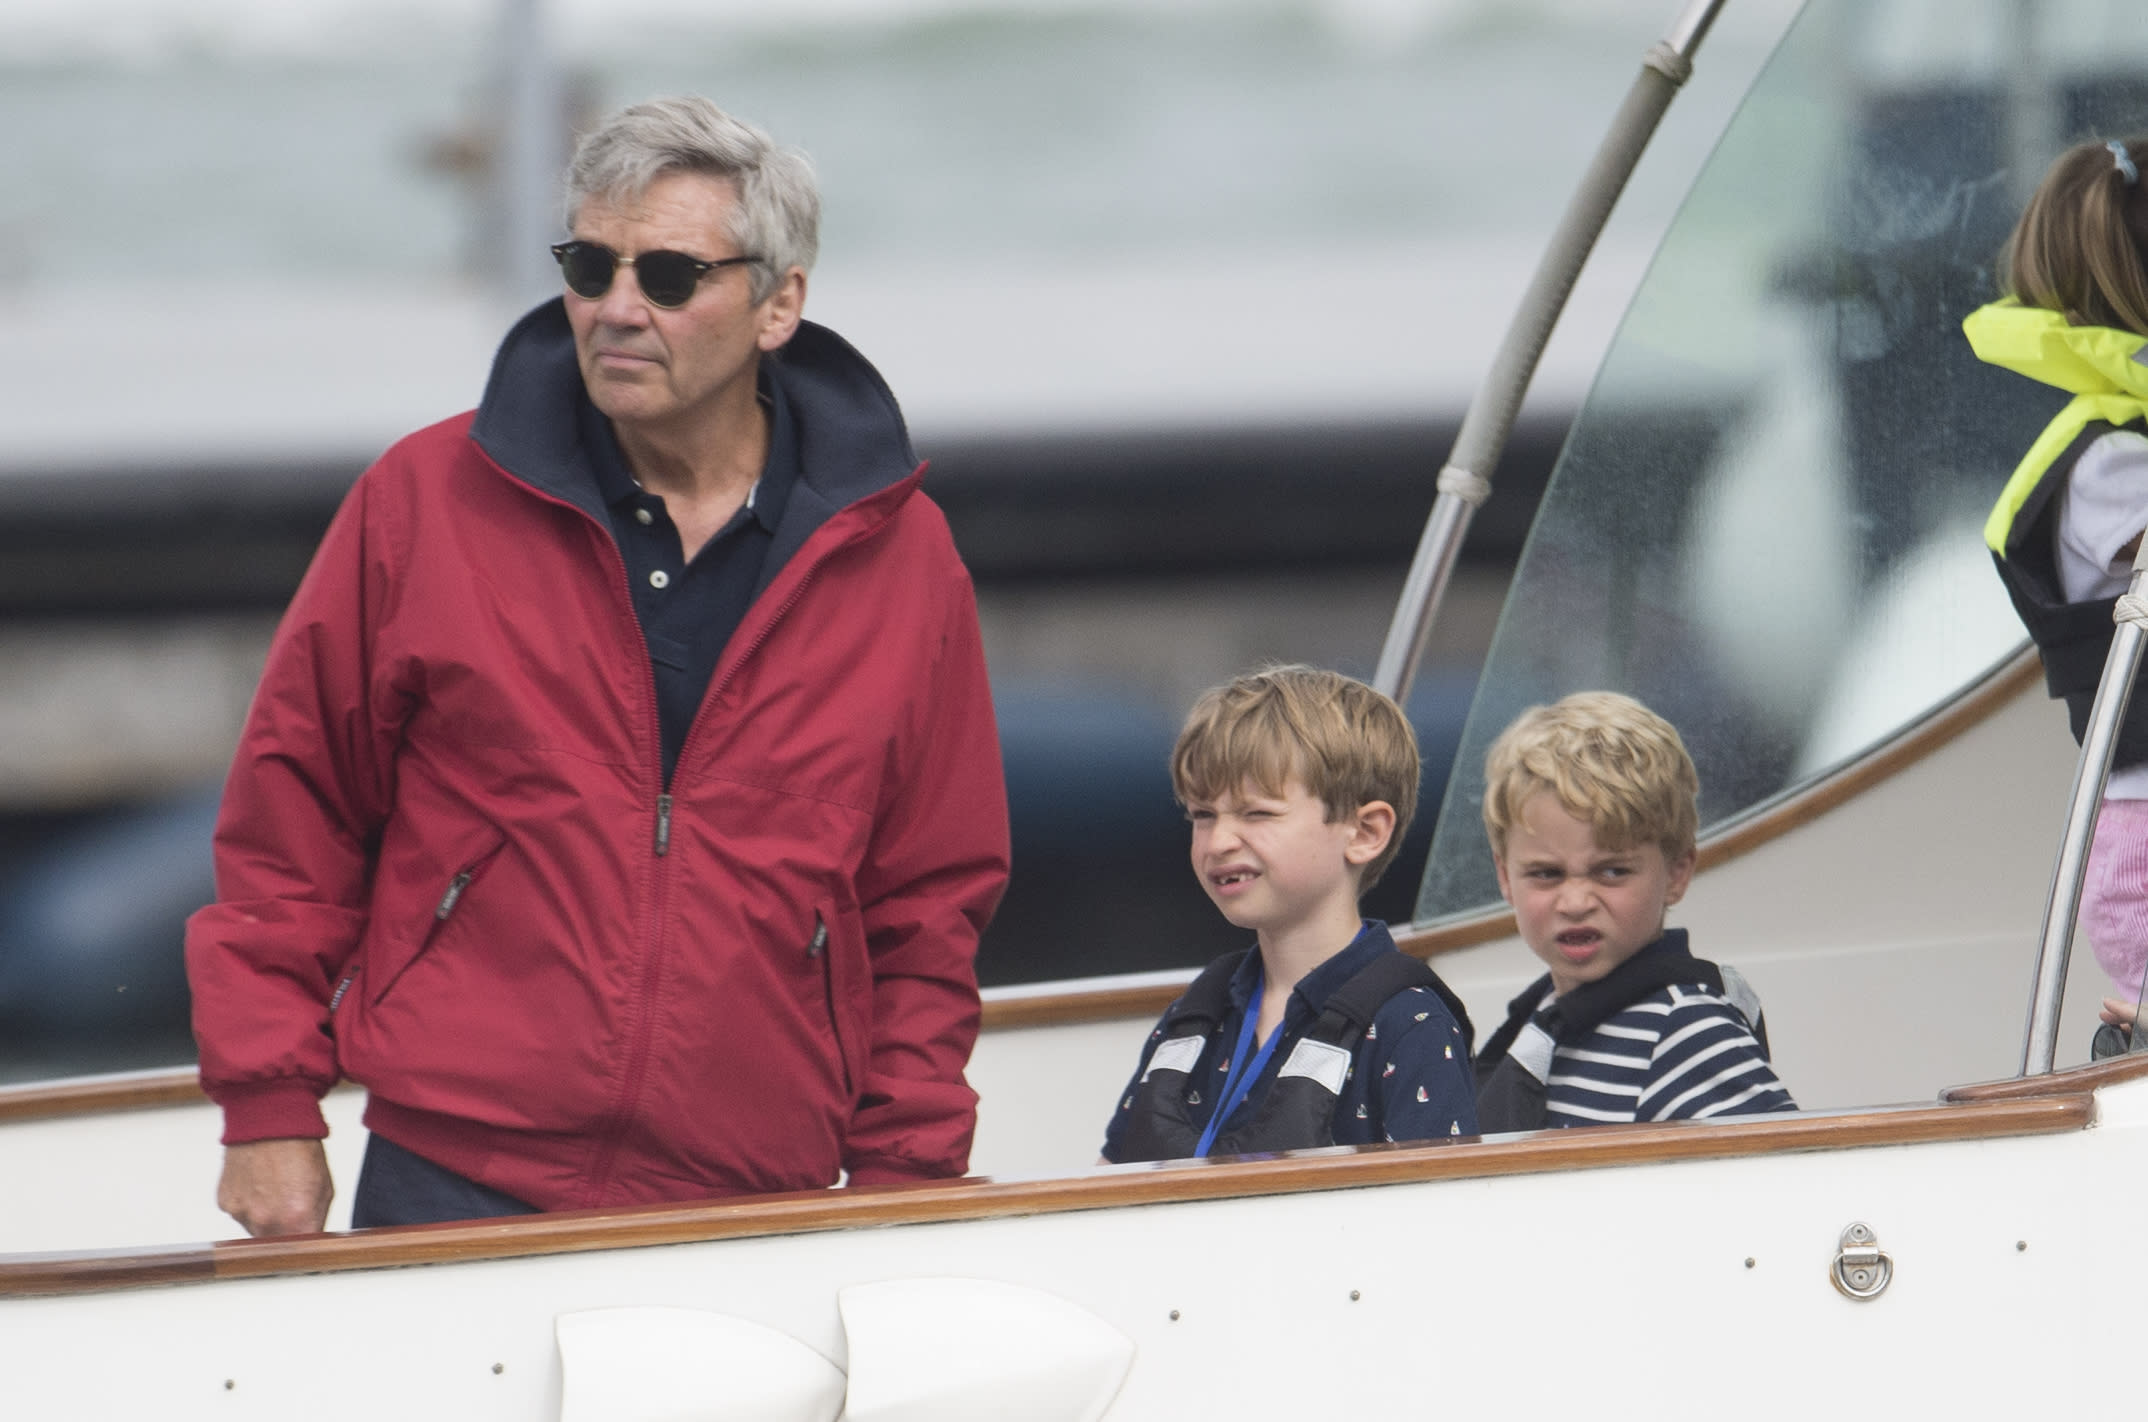 COWES, ENGLAND - AUGUST 08: Michael Middleton (L) with Prince George (R) at The Royal Yacht Squadron during the inaugural Kings Cup regatta hosted by the Duke and Duchess of Cambridge on August 08, 2019 in Cowes, England. Their Royal Highnesses hope that The Kings Cup will become an annual event bringing greater awareness to the wider benefits of sport, whilst also raising support and funds for Action on Addiction, Place2Be, the Anna Freud National Centre for Children and Families, The Royal Foundation, Child Bereavement UK, Centrepoint, Londonís Air Ambulance Charity and Tusk. on August 08, 2019 in Cowes, England. (Photo by Antony Jones/Getty Images)